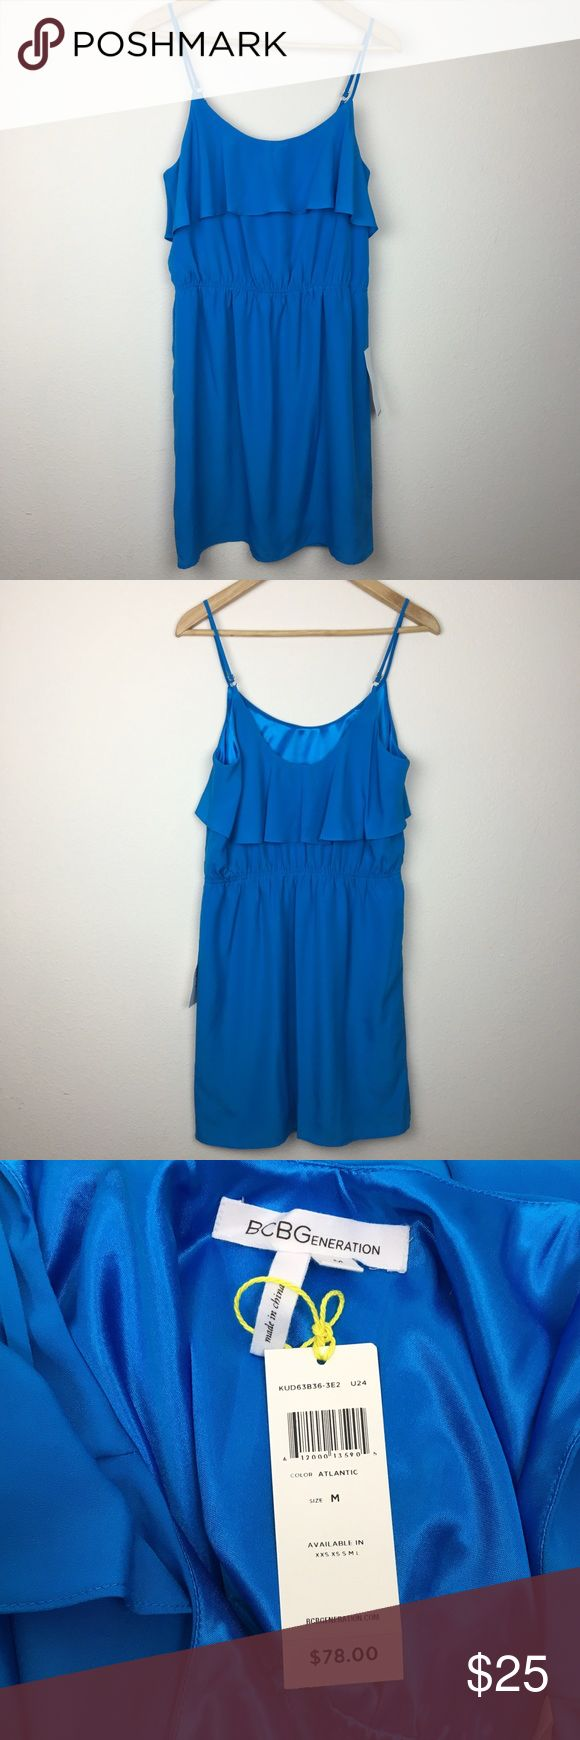 "BCBGeneration Spaghetti Strap Atlantic Dress M NWT. Brand: BCBGeneration Style: Spaghetti Strap Dress. Material: Self 100% Polyester, Lining 100% Polyester. Color: Blue. Size Medium. Length without straps 31"" Armpit to armpit 18"". Adjustable straps. Made in China. Make an offer. BCBGeneration Dresses"